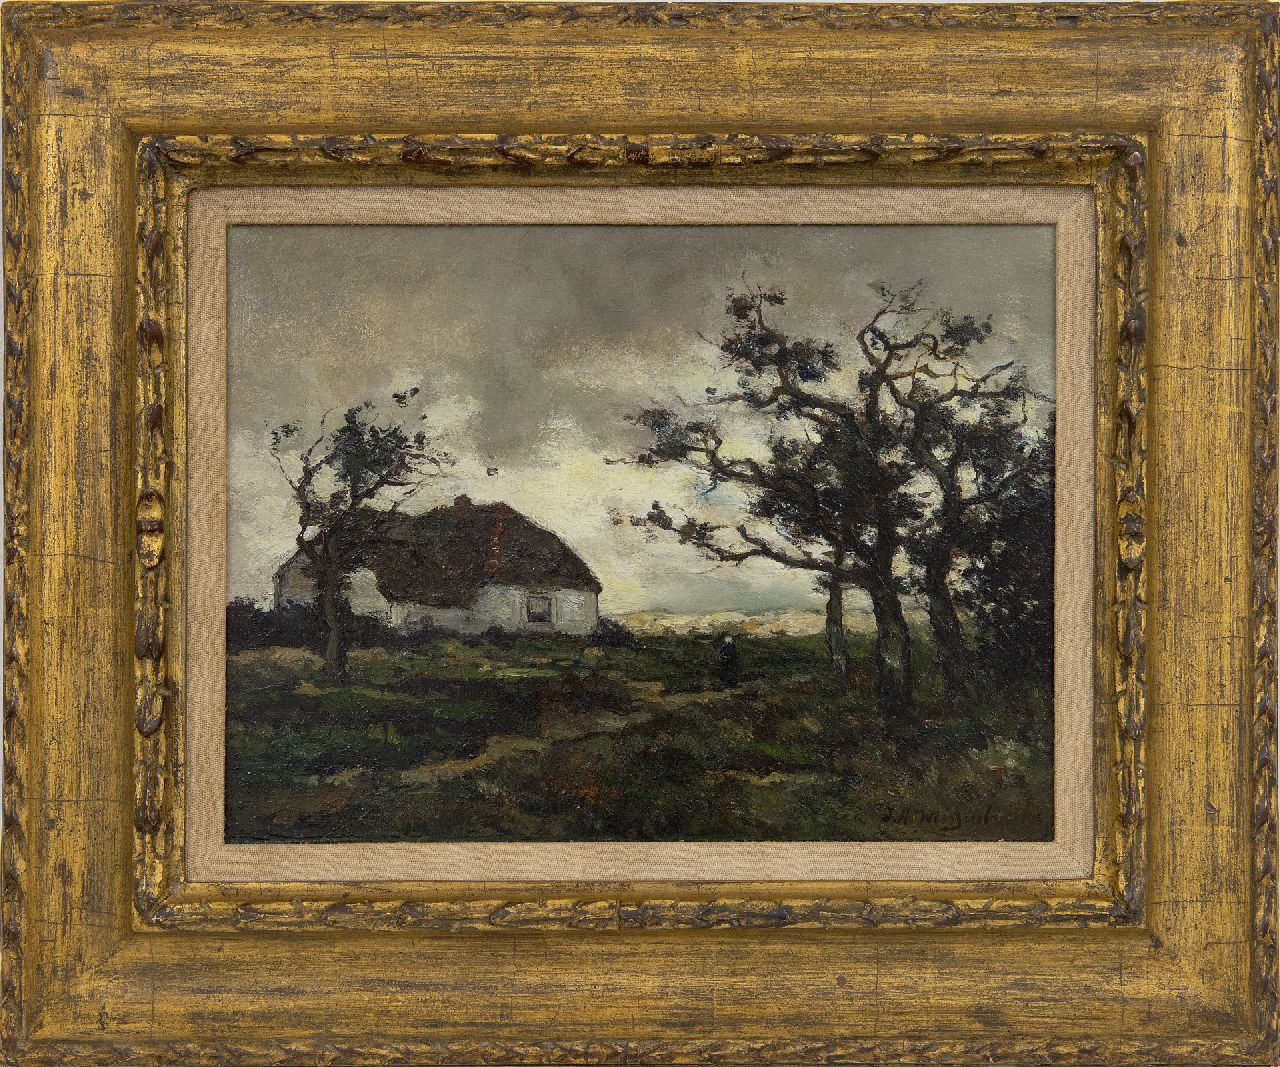 Weissenbruch H.J.  | Hendrik Johannes 'J.H.' Weissenbruch | Paintings offered for sale | Landscape with farmhouse near Dekkersduin, The Hague, oil on paper laid down on panel 23.2 x 31.1 cm, signed l.r.